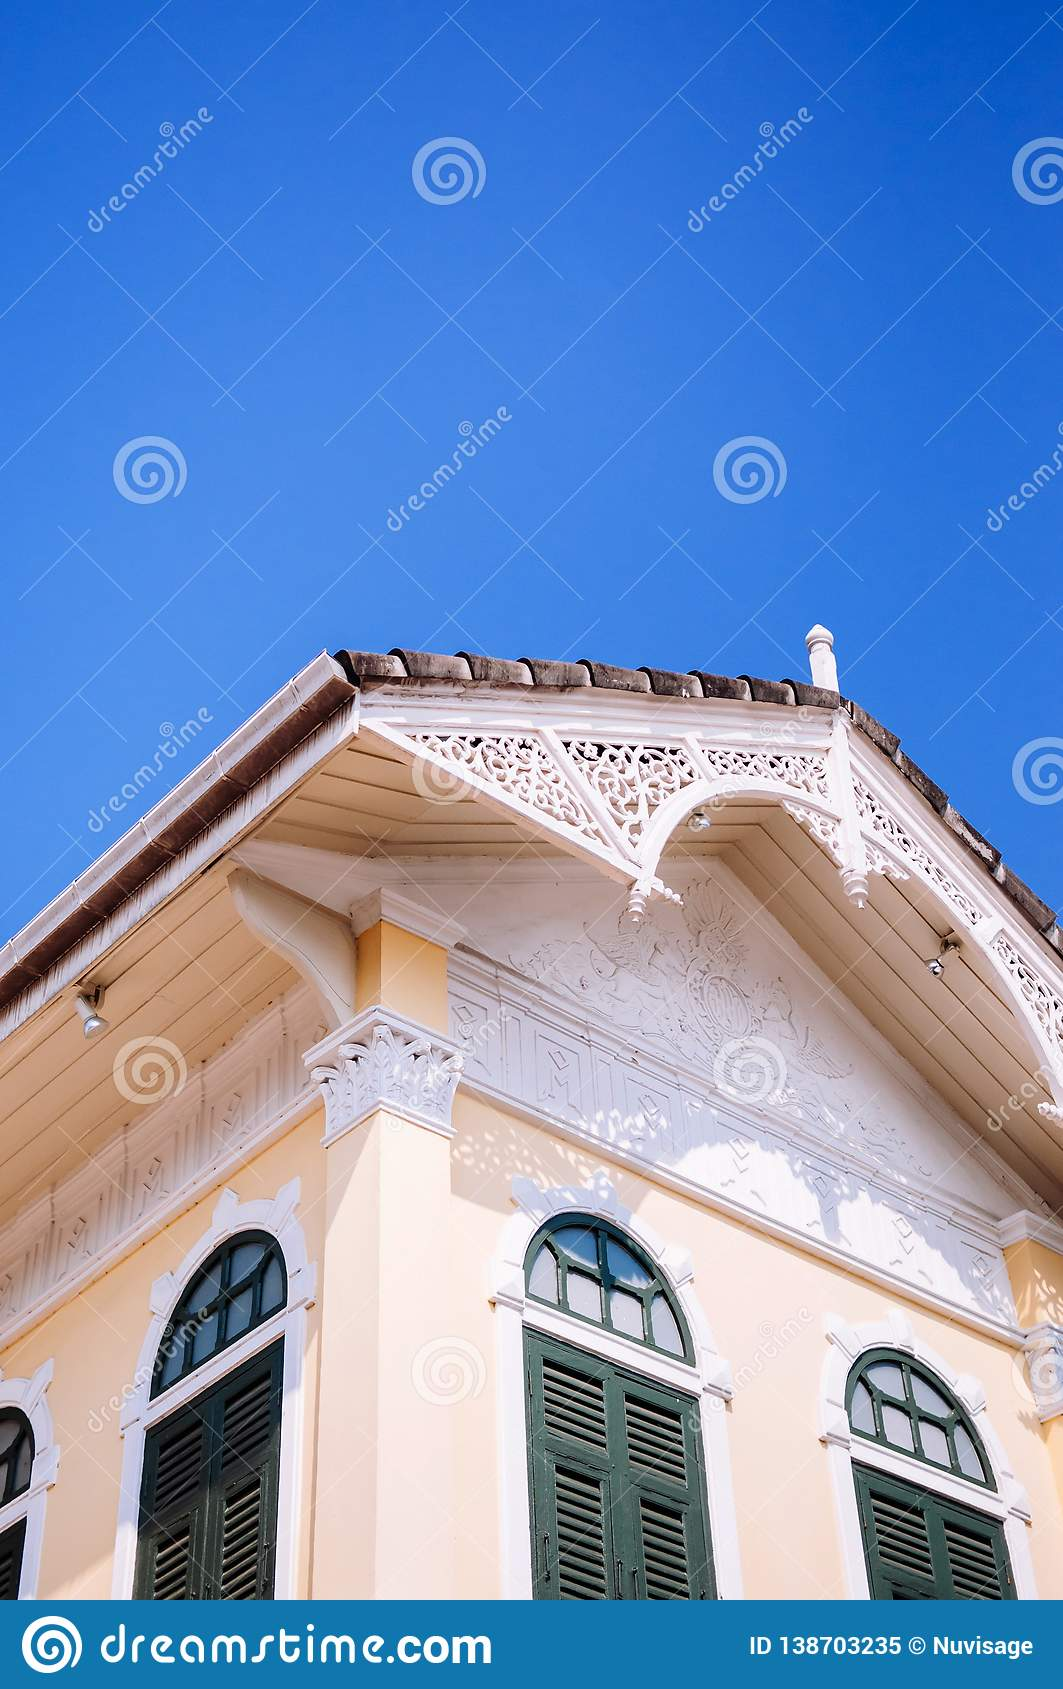 Wooden facade of Victorian style Gingerbread house, Colonial building